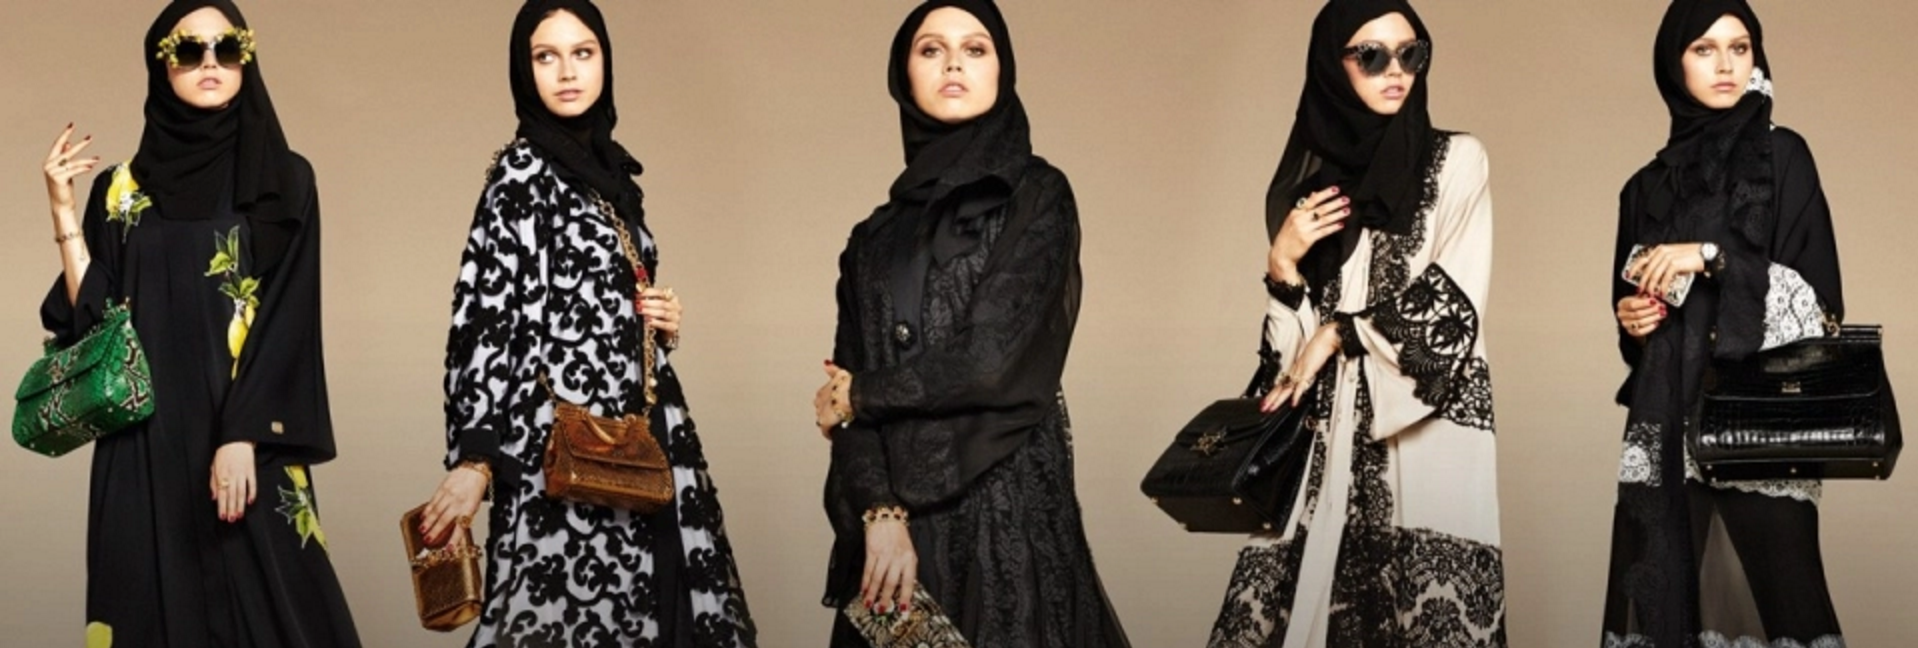 Dolce Gabbana Launches Abayas and Hijabs for Arab Women